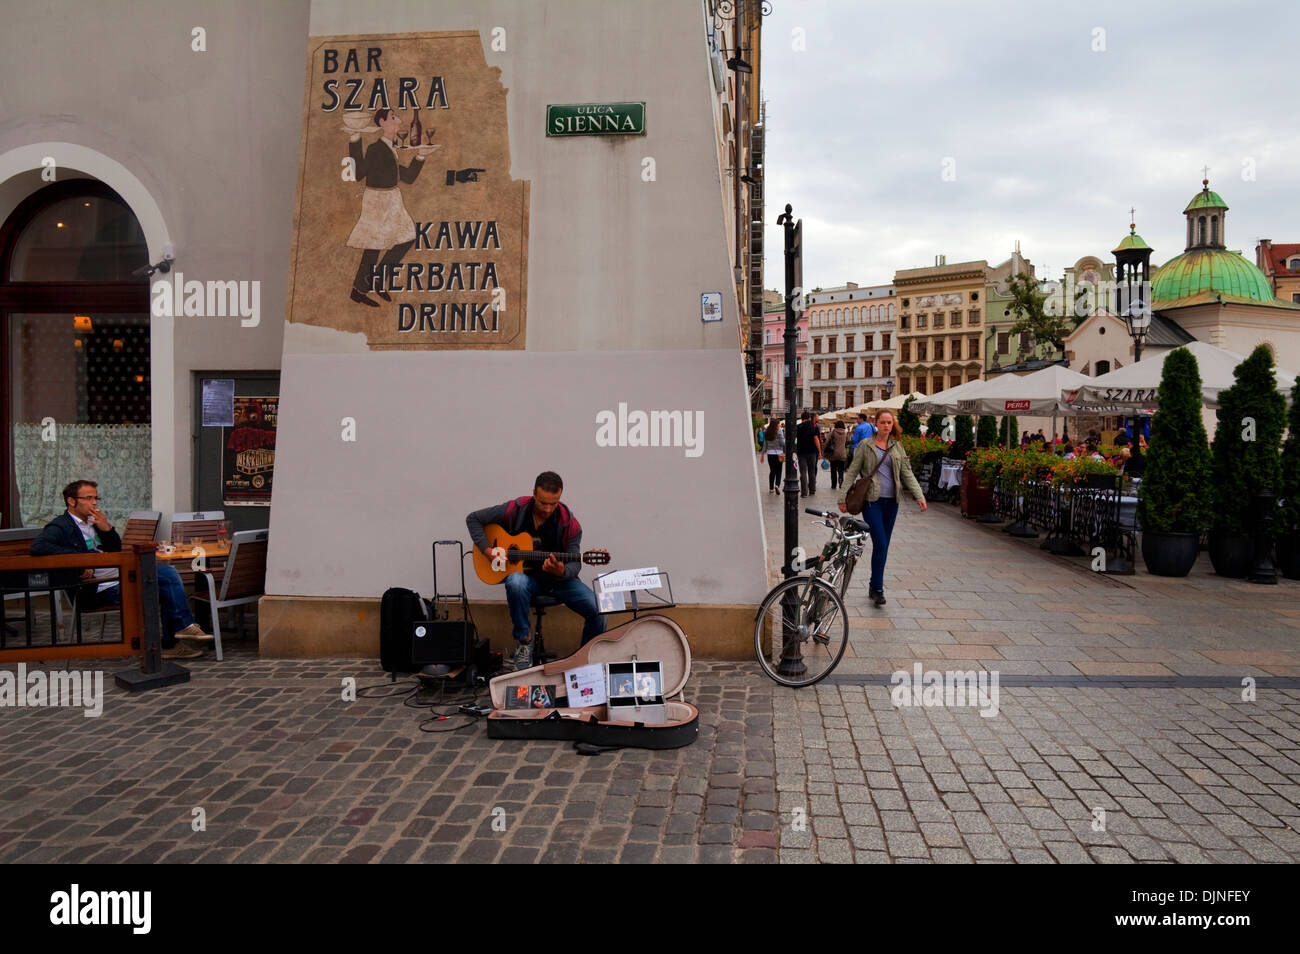 Street Busker playing guitar in Rynek Glowny The Main Market Square, Old Town, Krakow, Poland - Stock Image